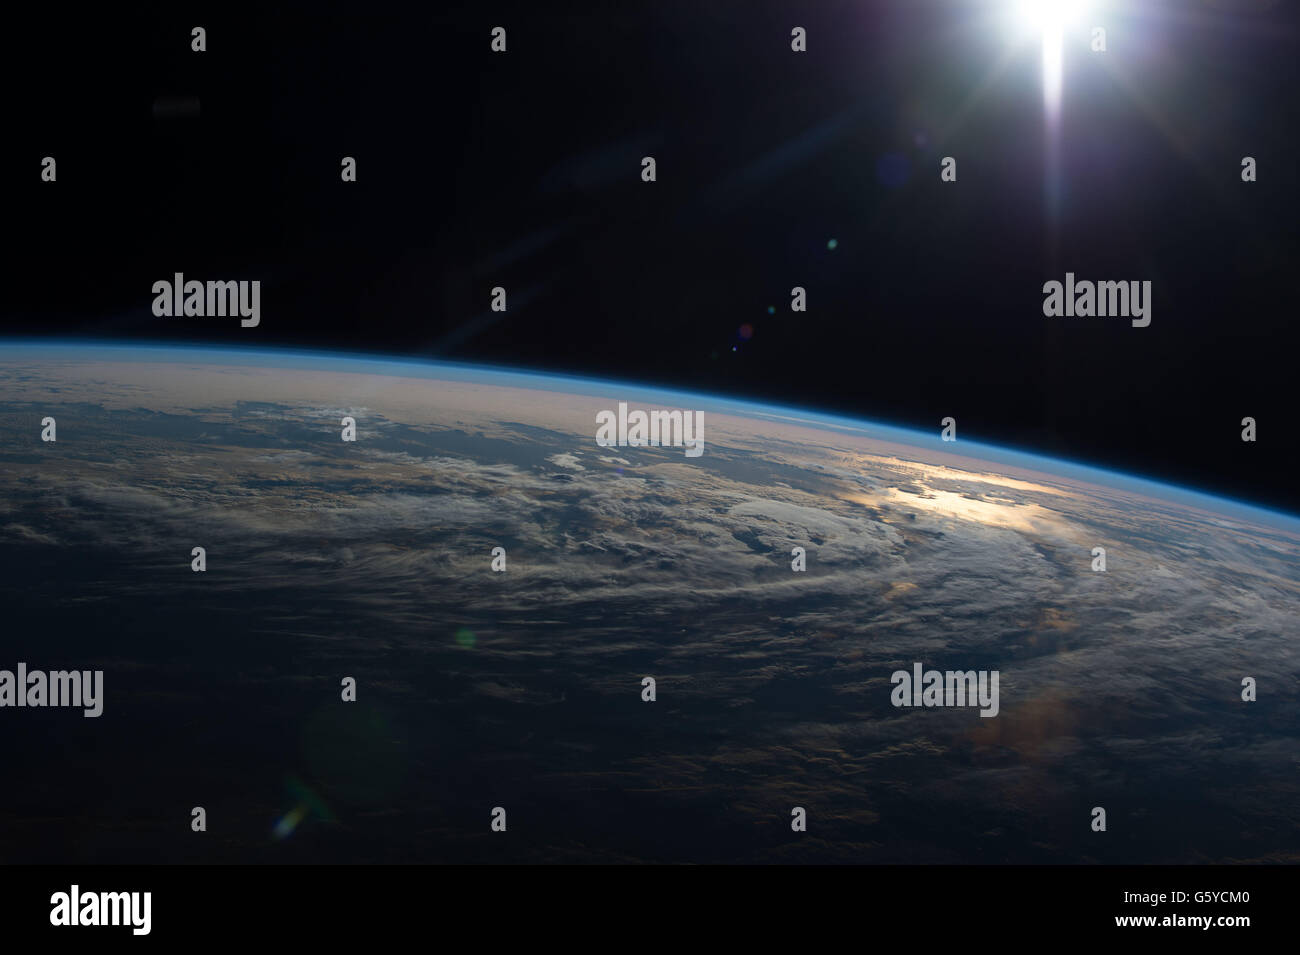 International Space Station Earth observation image captured by Expedition 47 members showing the sun reflecting - Stock Image